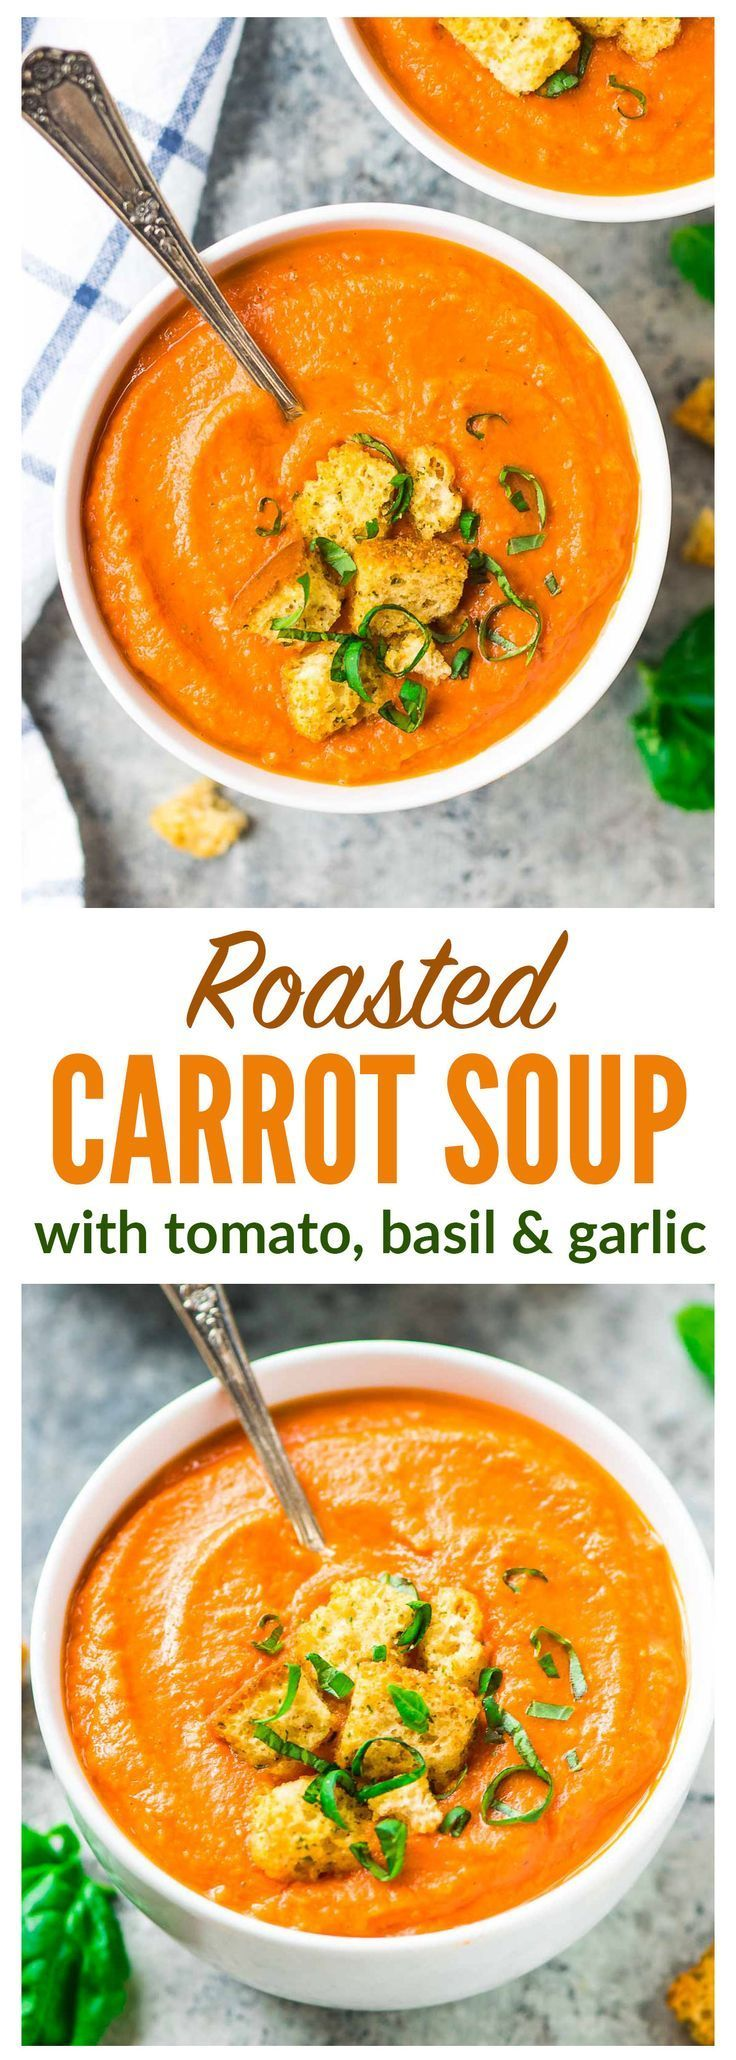 Roasted Carrot Tomato Soup - An easy roasted carrot soup with garlic, cumin, and Greek yogurt to make it creamy and filling. Simple, healthy, and great leftover for lunches and dinners all week long! Recipe at http://wellplated.com | /wellplated/